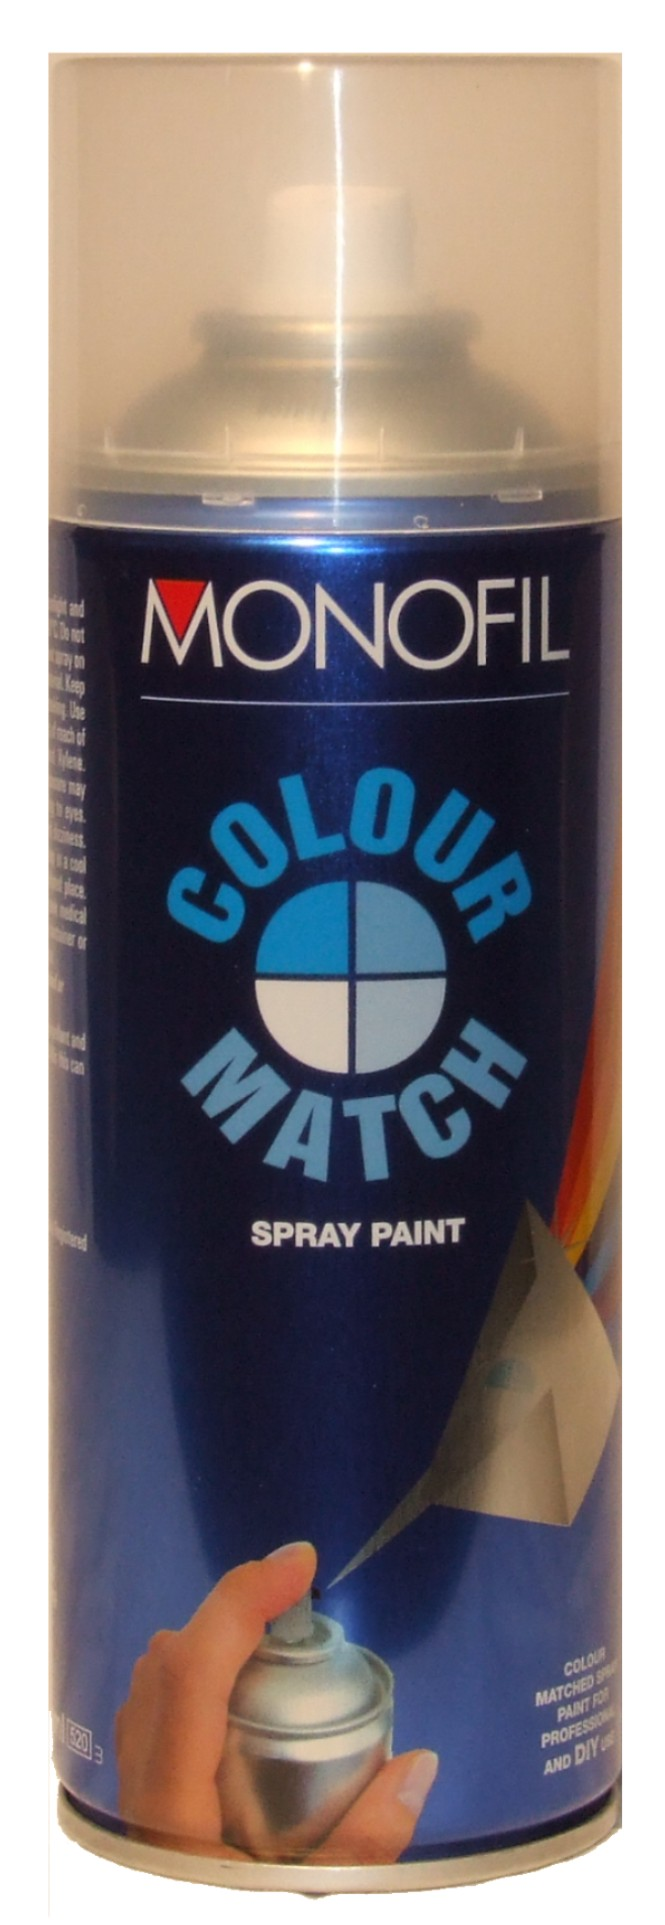 Monofil Spray Paint